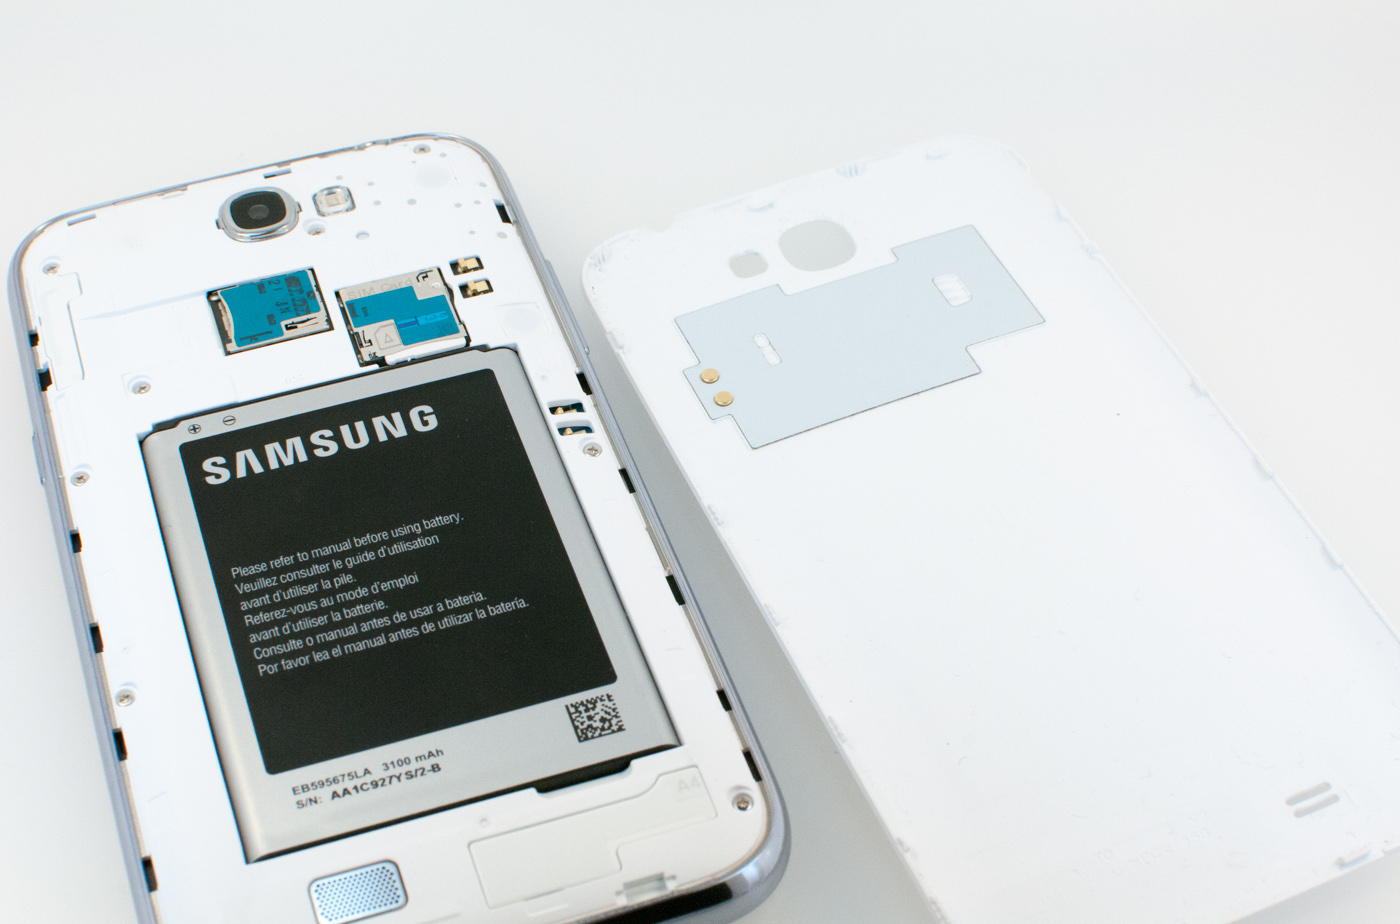 Samsung Galaxy Note 2 Review (T-Mobile)